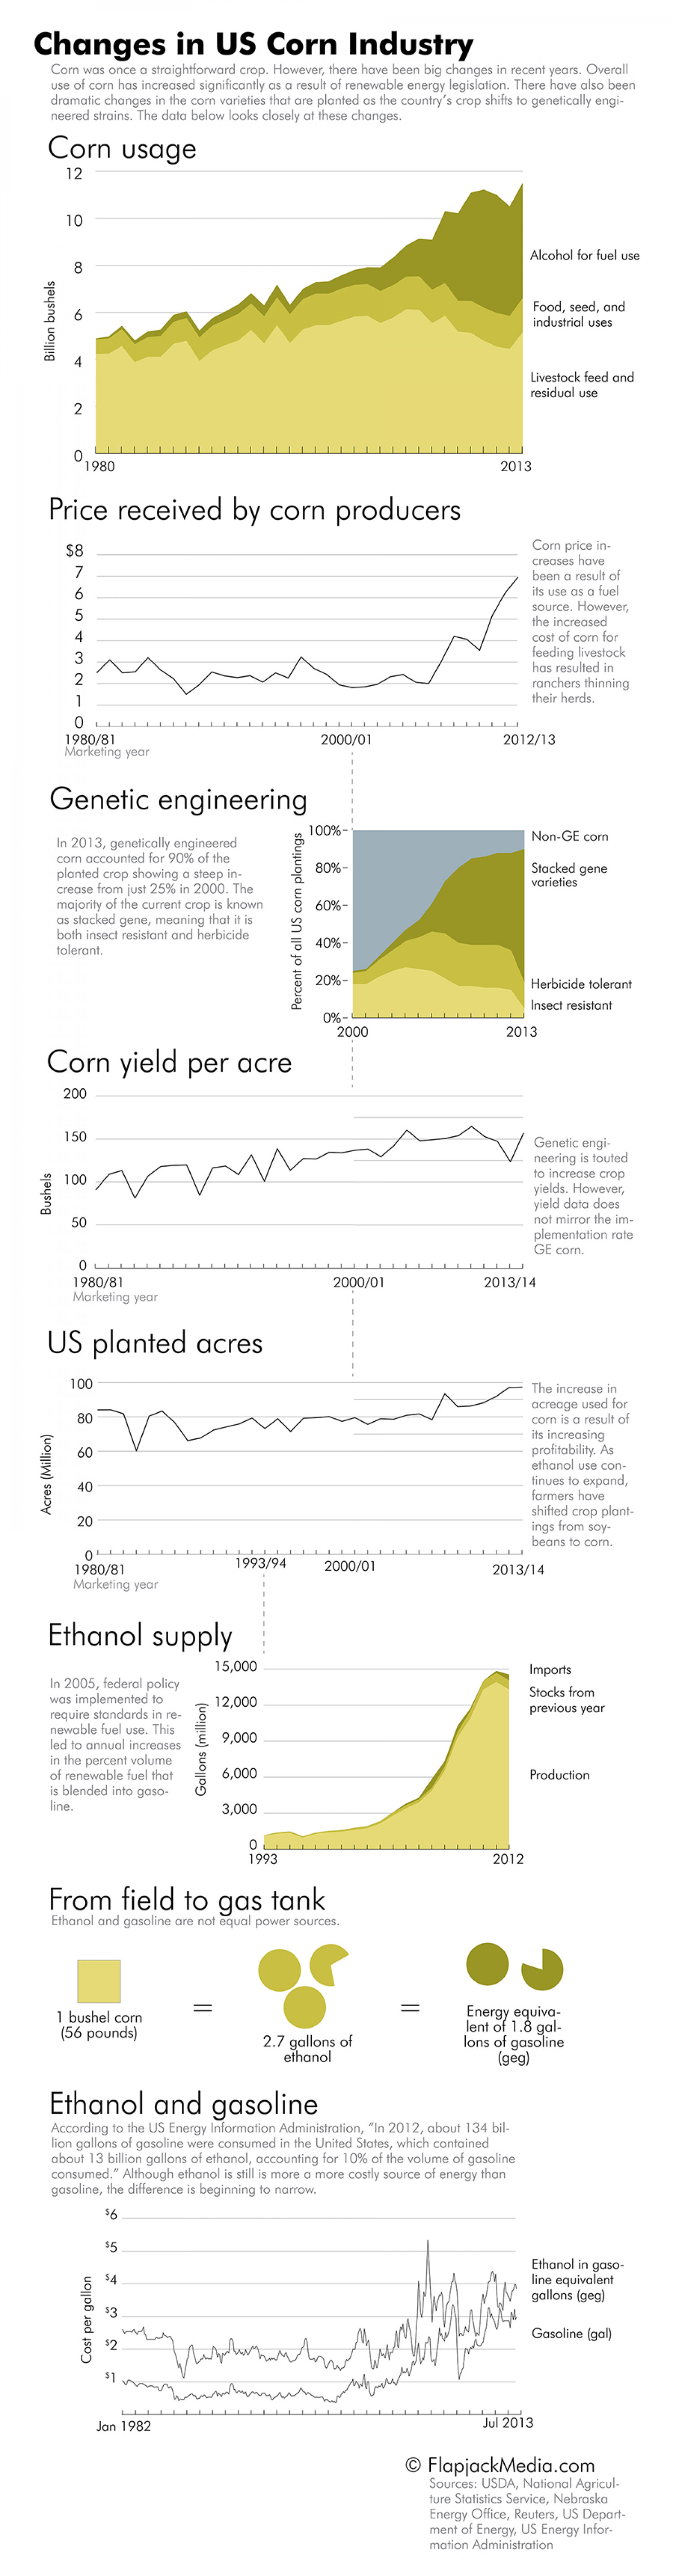 Fields of Gold: Changes in the US Corn Industry Infographic